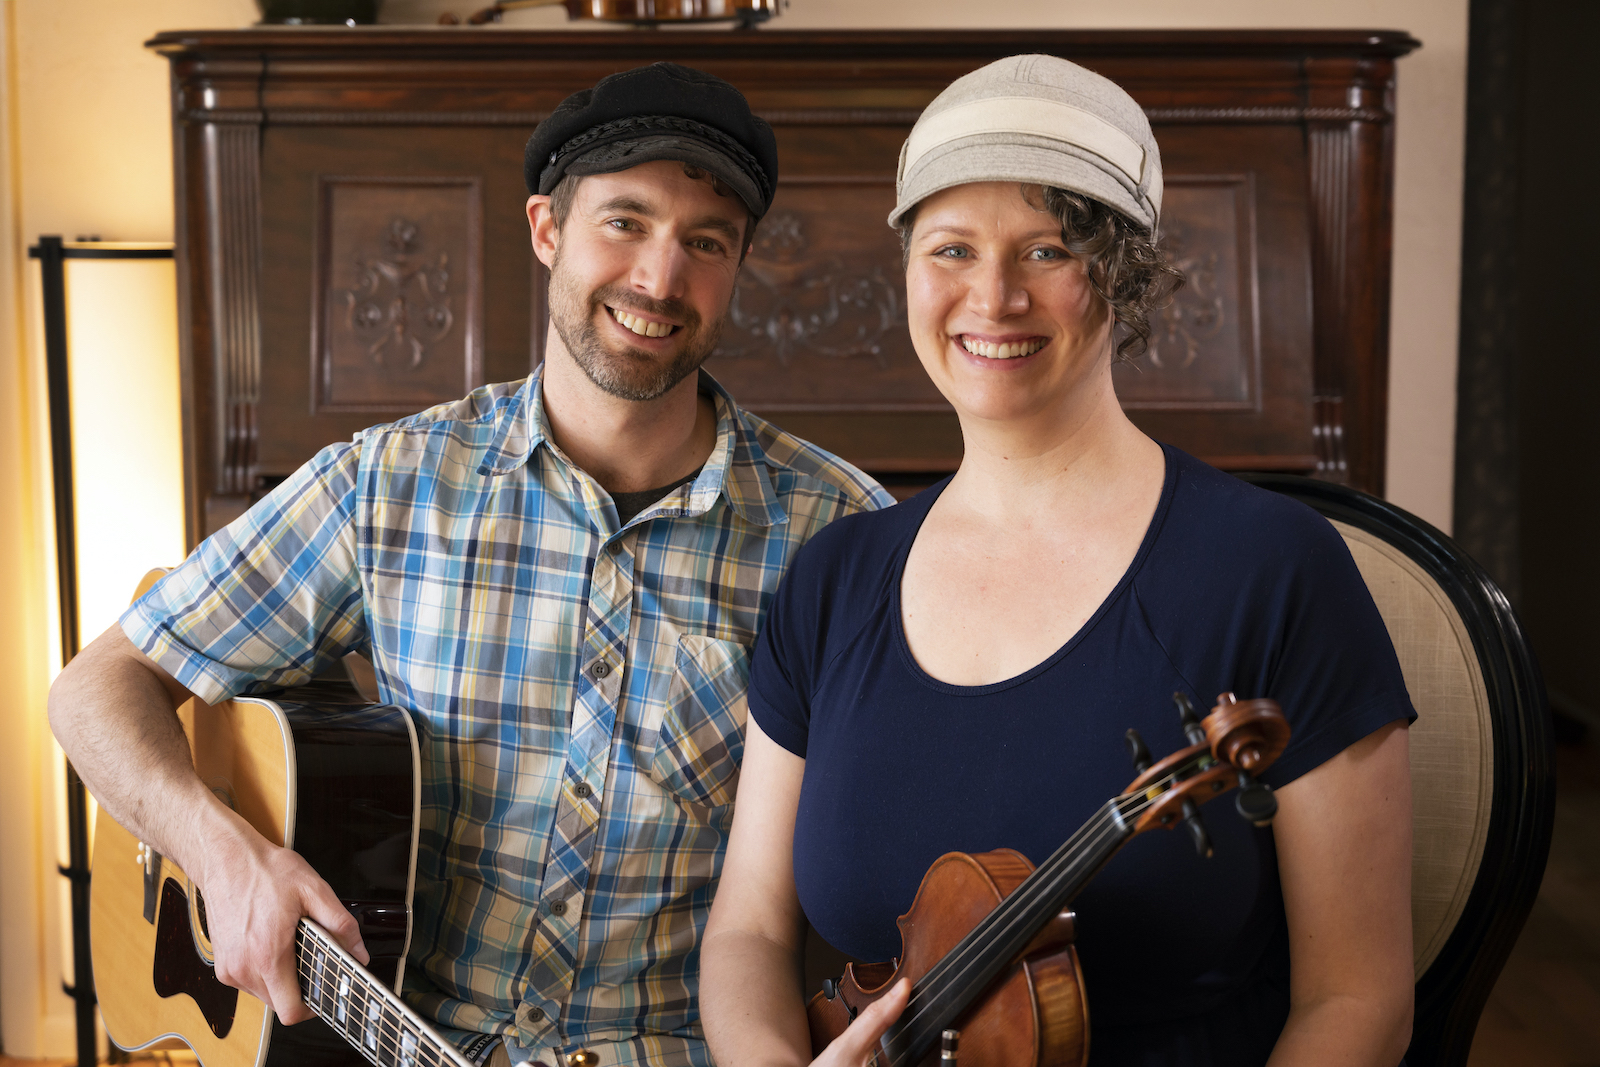 Boise Music Lessons owners Marcus and Angie Marianthi, for Beyond the Major profile, John Kelly photo.